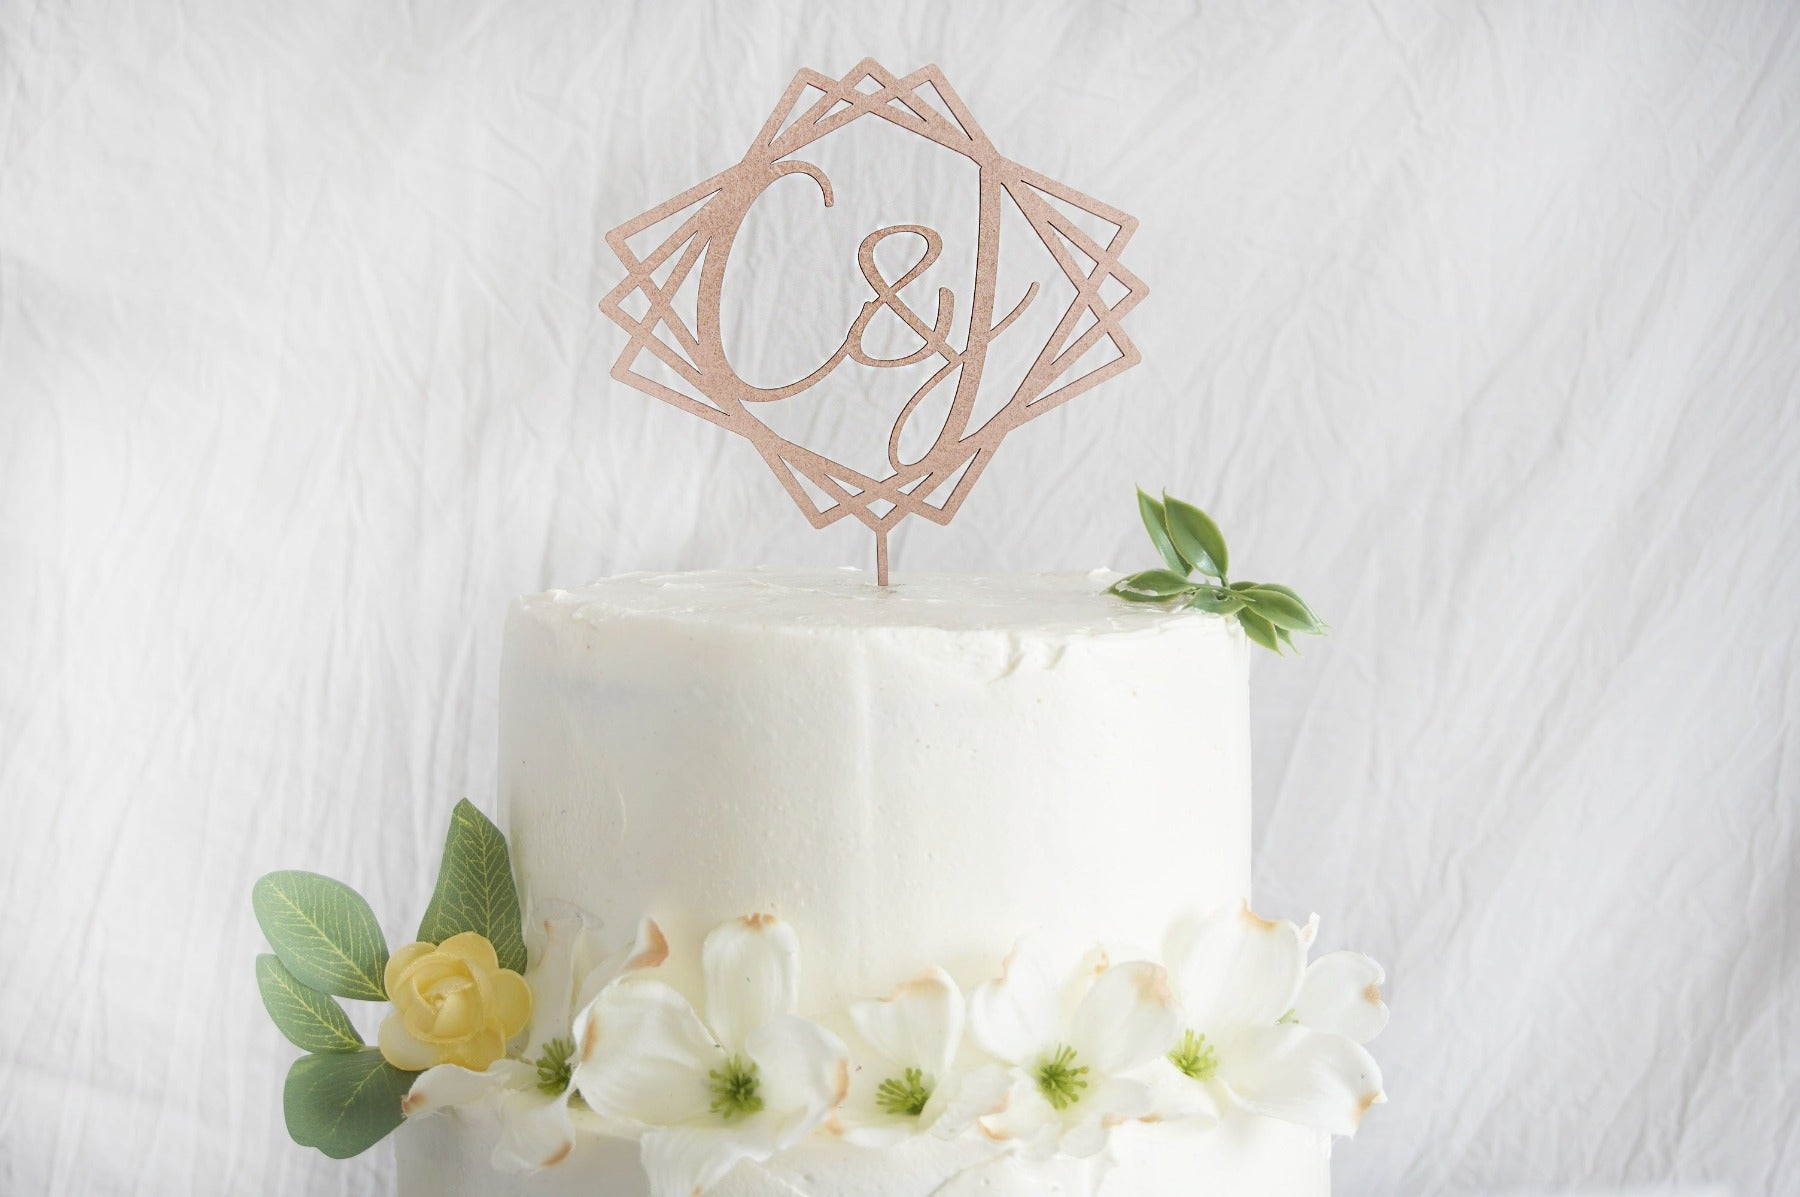 Geometric Wedding Cake Topper | Custom Cake Toppers Personalized | Made in Wood or Acrylic, Cake Toppers, designLEE Studio, designLEE Studio